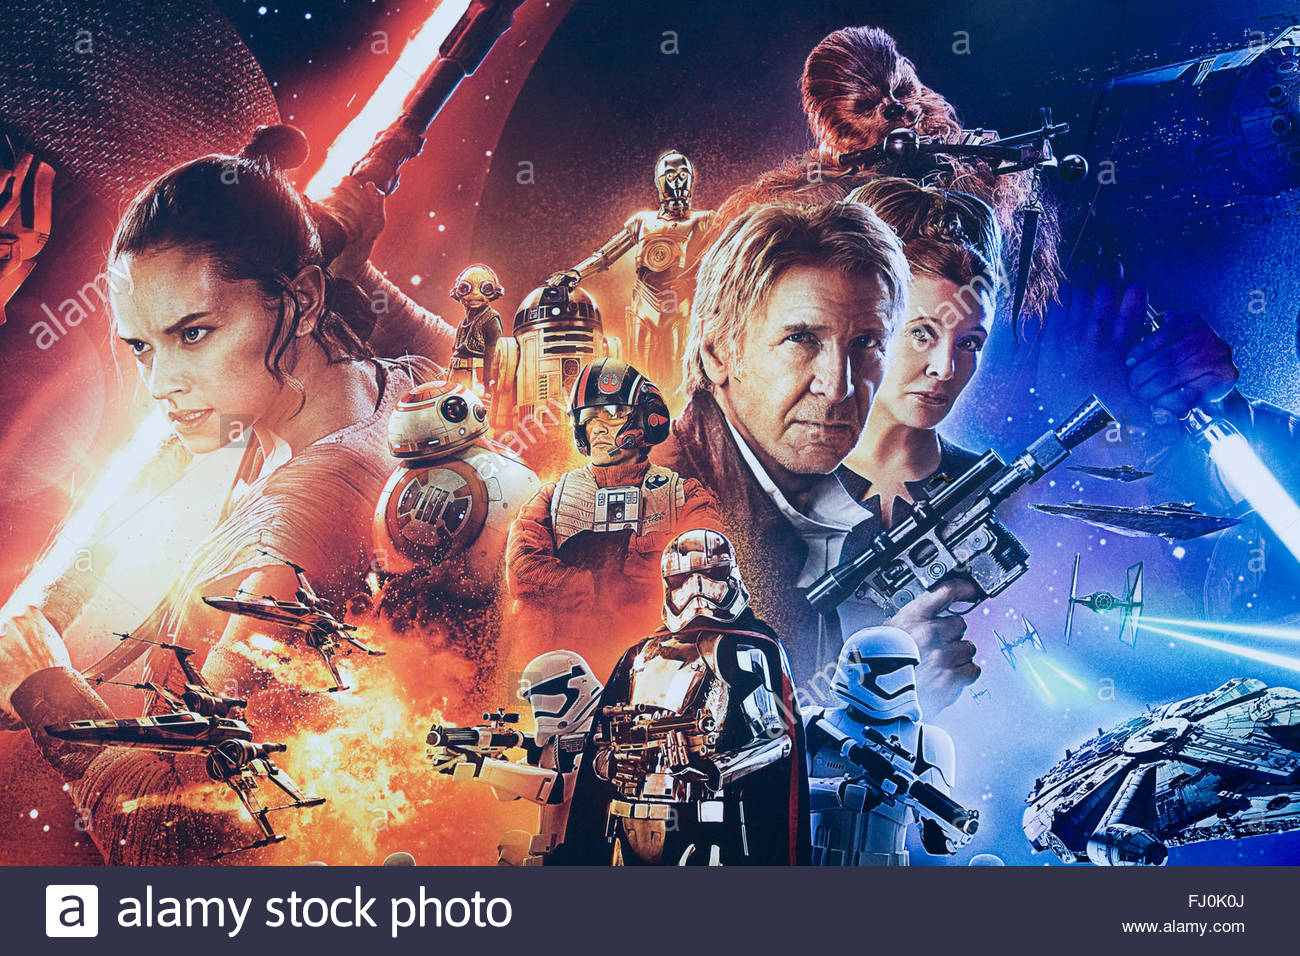 Poster advertising the New star wars movie 'The Force Awakens' for the European Premiere in London - Stock Image